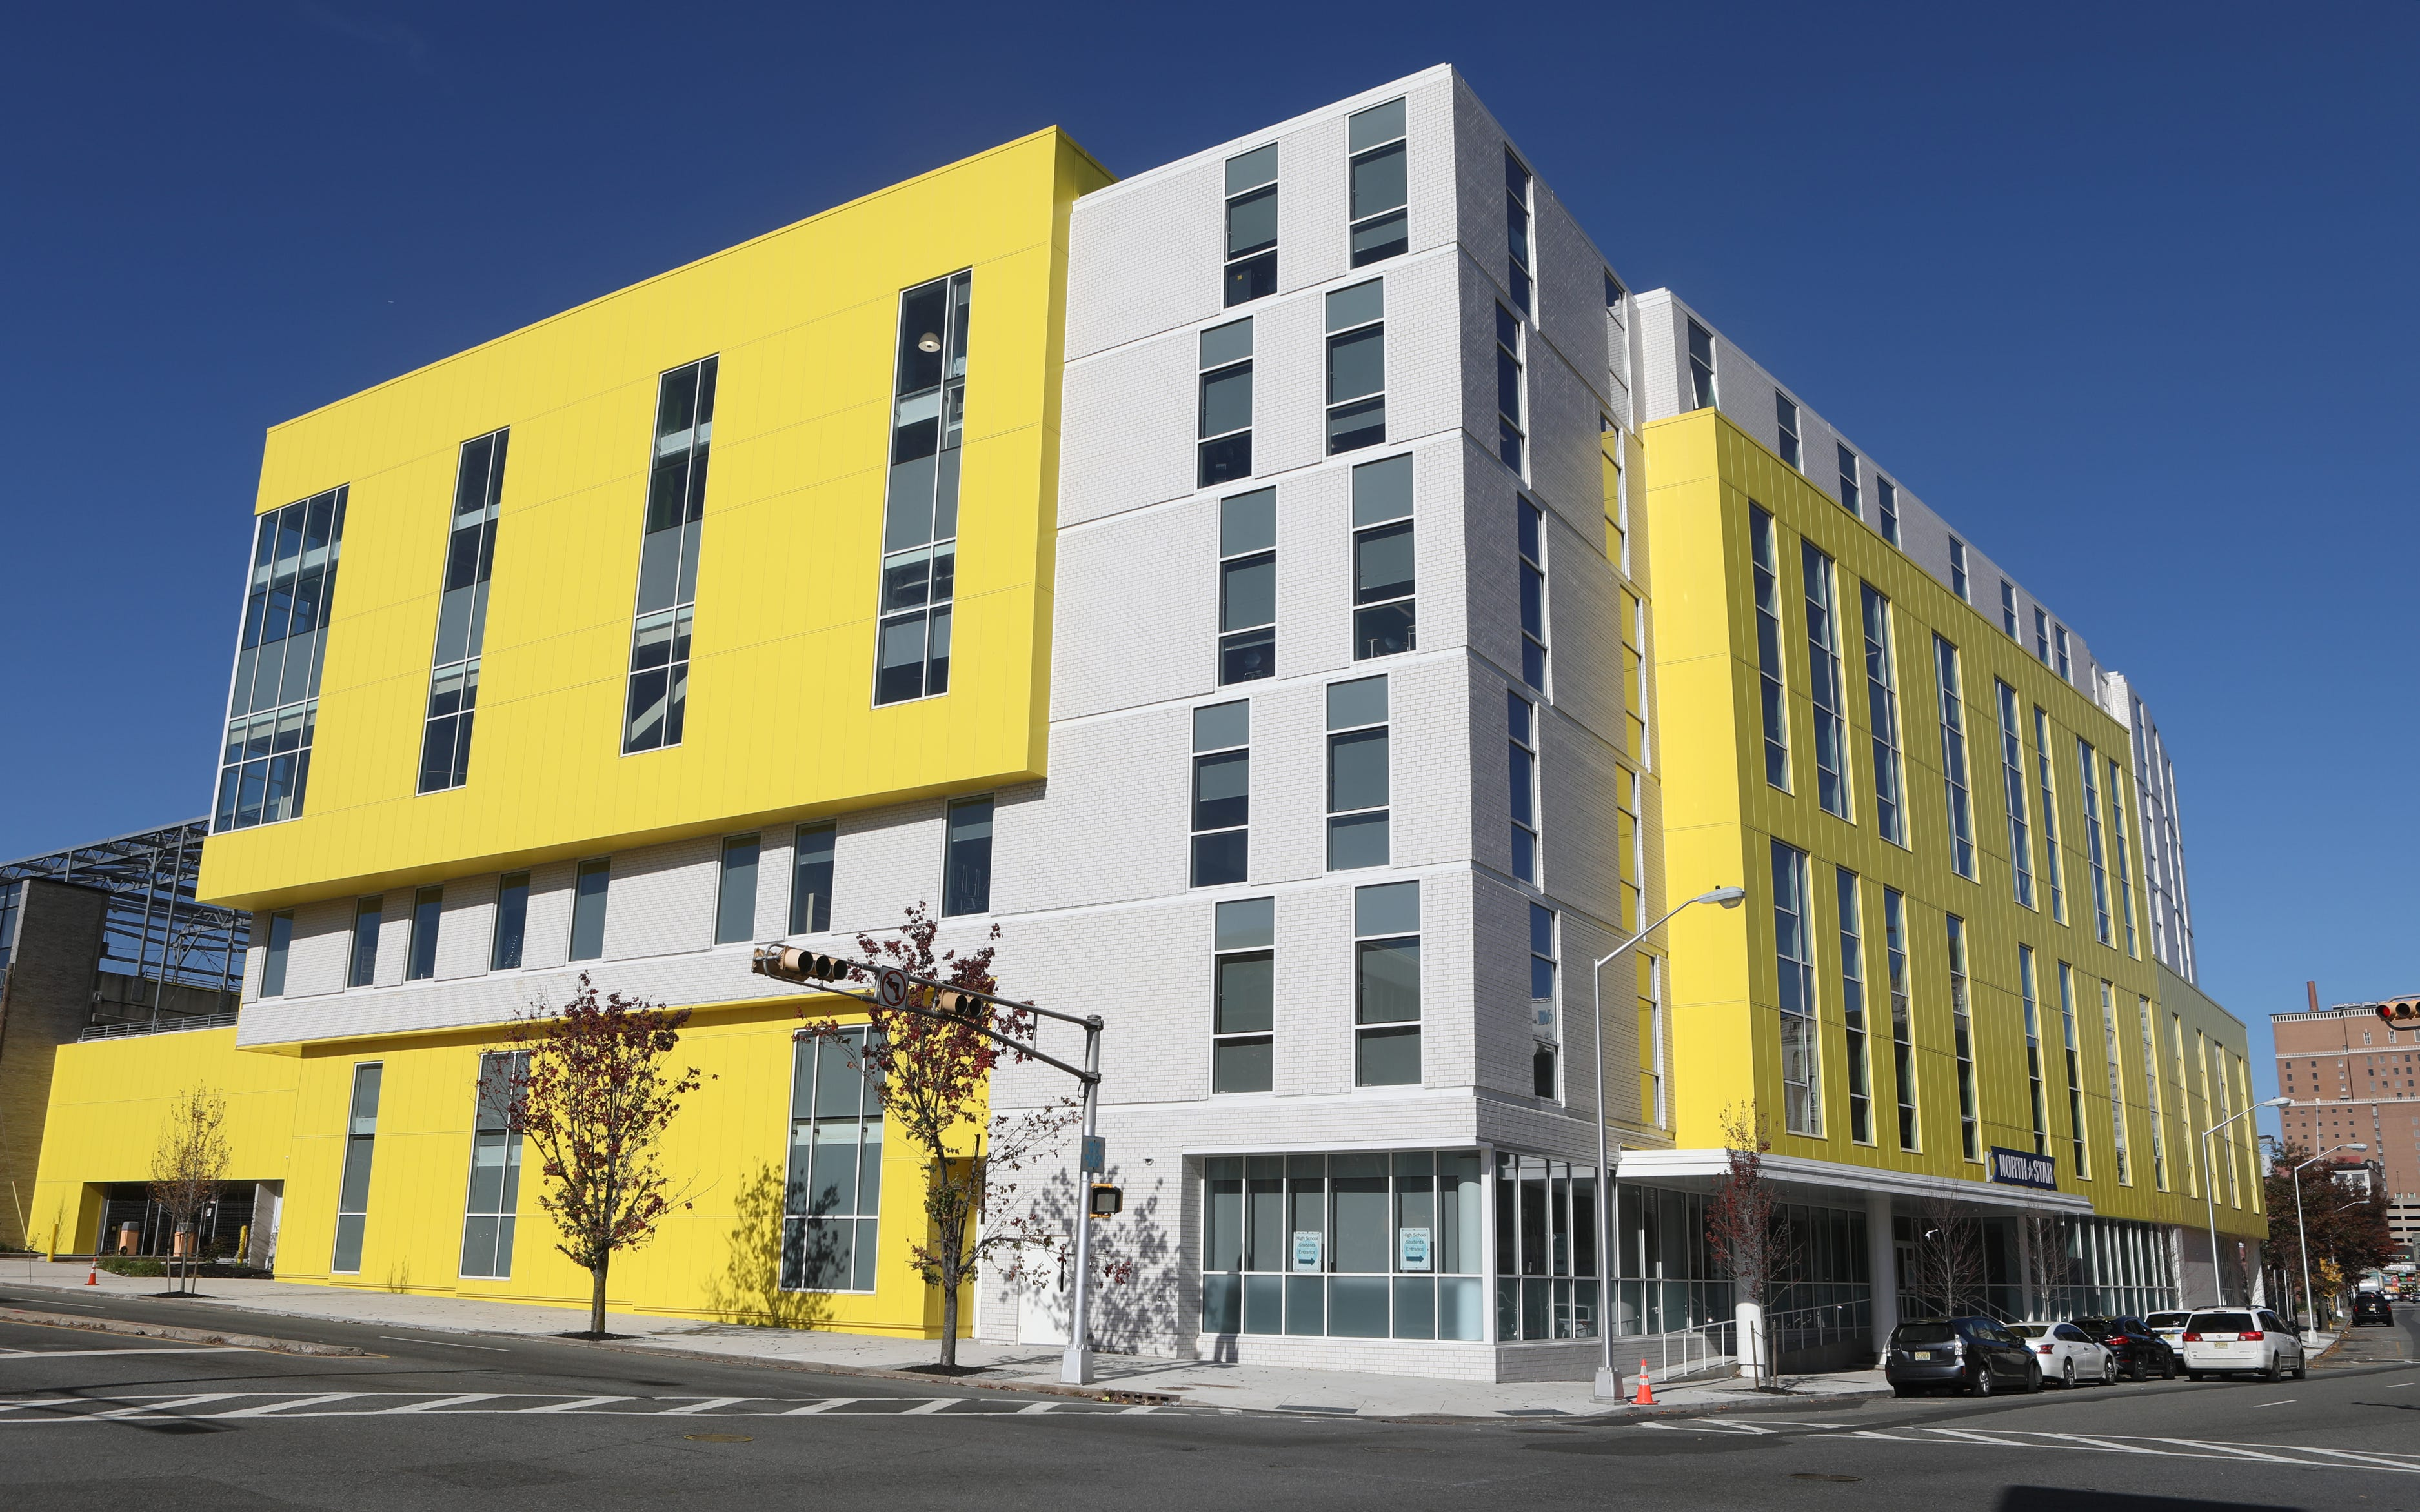 This six-story building, located at 377 Washington St. in Newark, is one of North Star Academy's newest buildings.